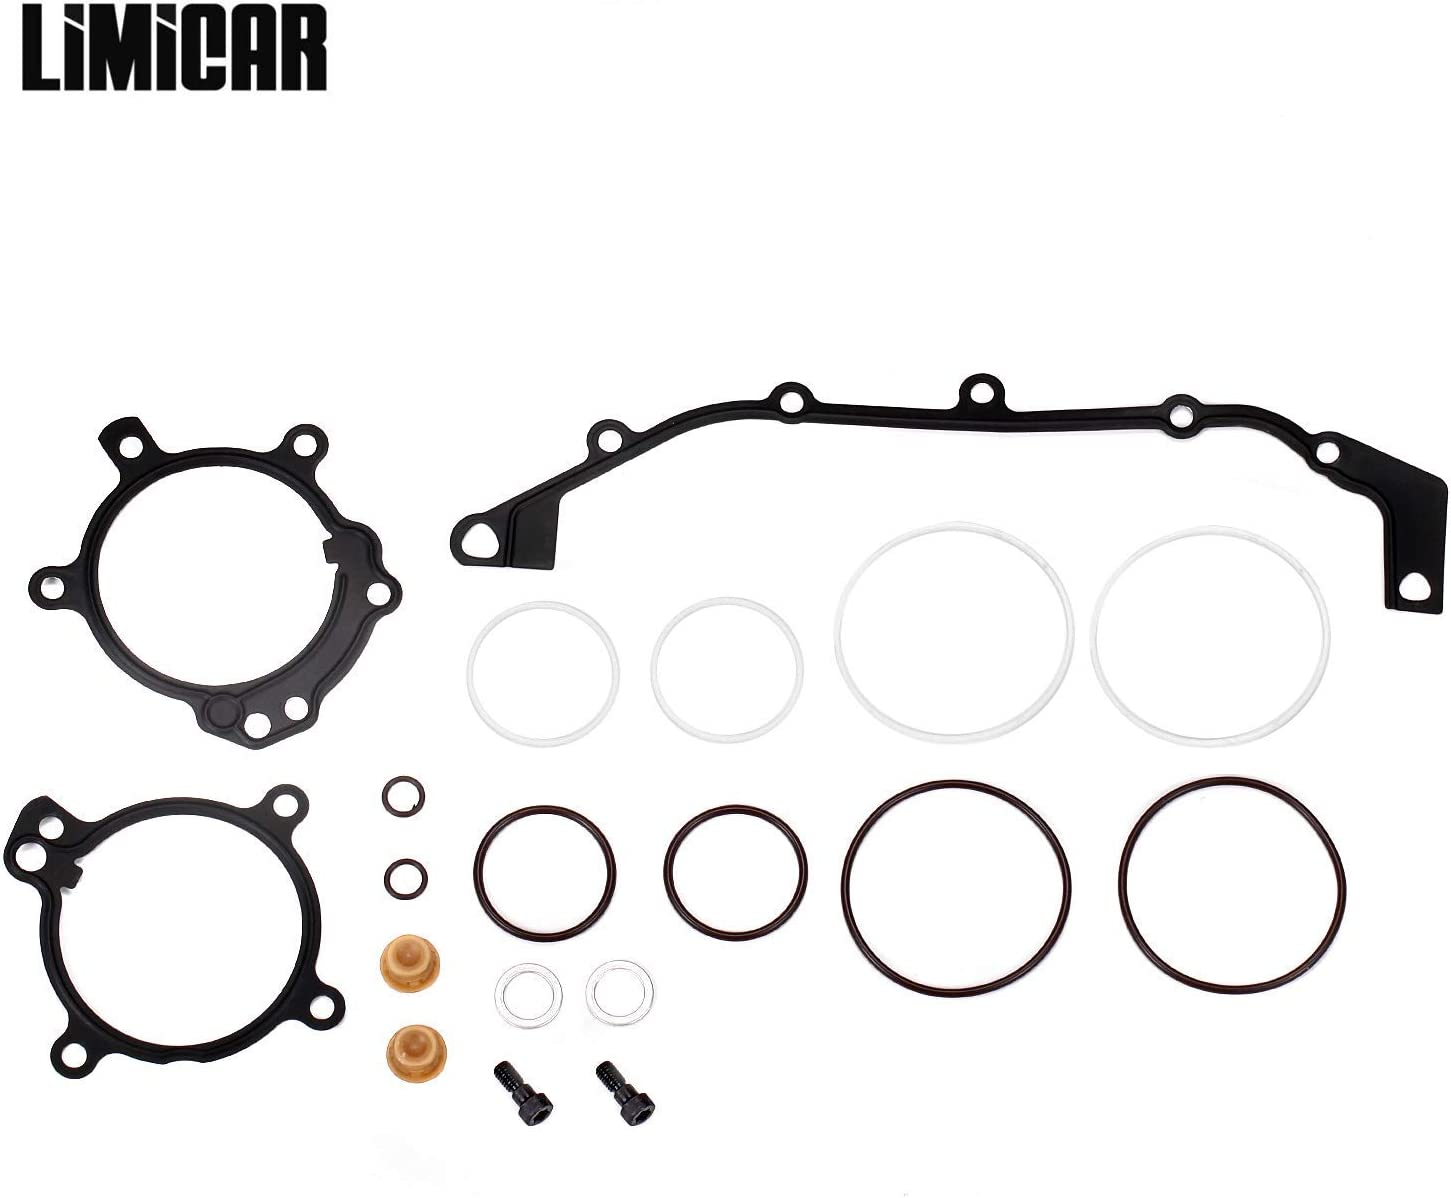 LIMICAR DUAL Stage 3 VANOS Camshaft Cover O-Ring Seal Repair Kit Compatible with BMW E36 E39 E46 E53 E60 E83